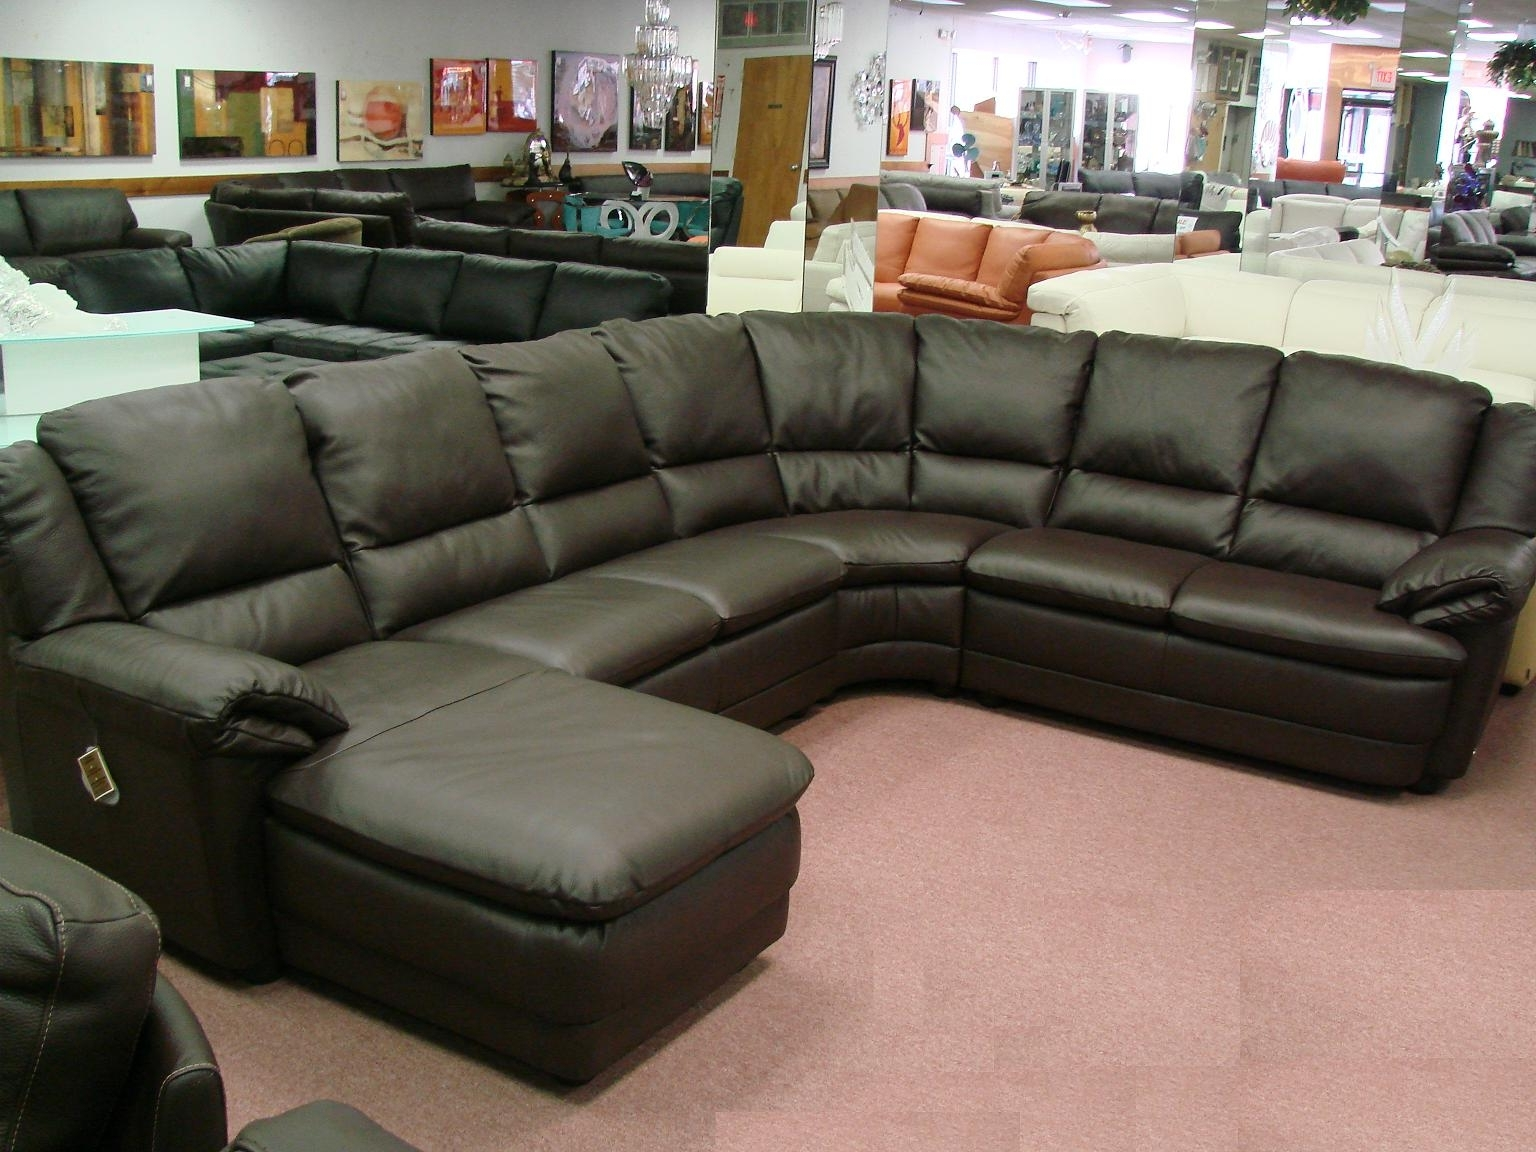 Recent Couch: Wonderful Deep Set Couch Deep Lounge Sofa, Best Deep Sofa In On Sale Sectional Sofas (View 11 of 15)